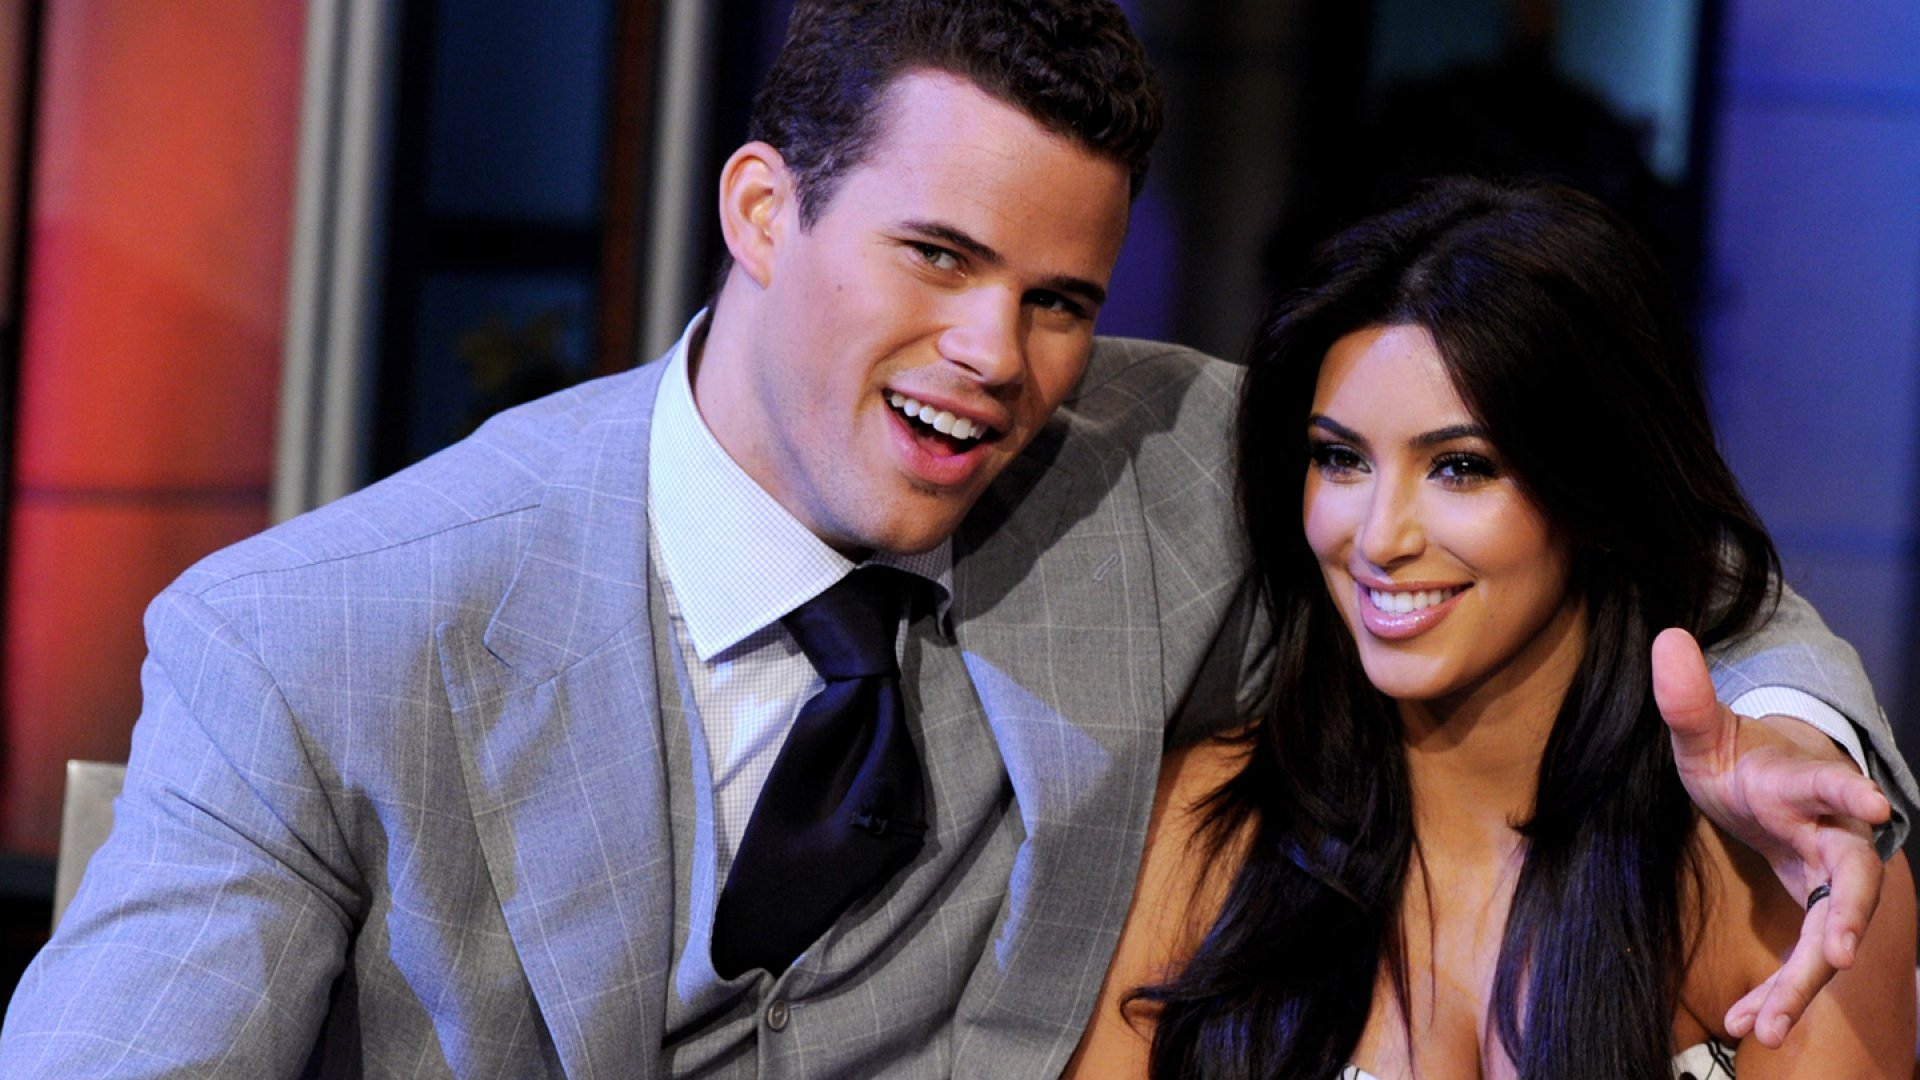 NBA player Kris Humphries and his wife reality TV personality Kim Kardashian appear on the Tonight Show With Jay Leno at NBC Studios on October 4, 2011 in Burbank, California.